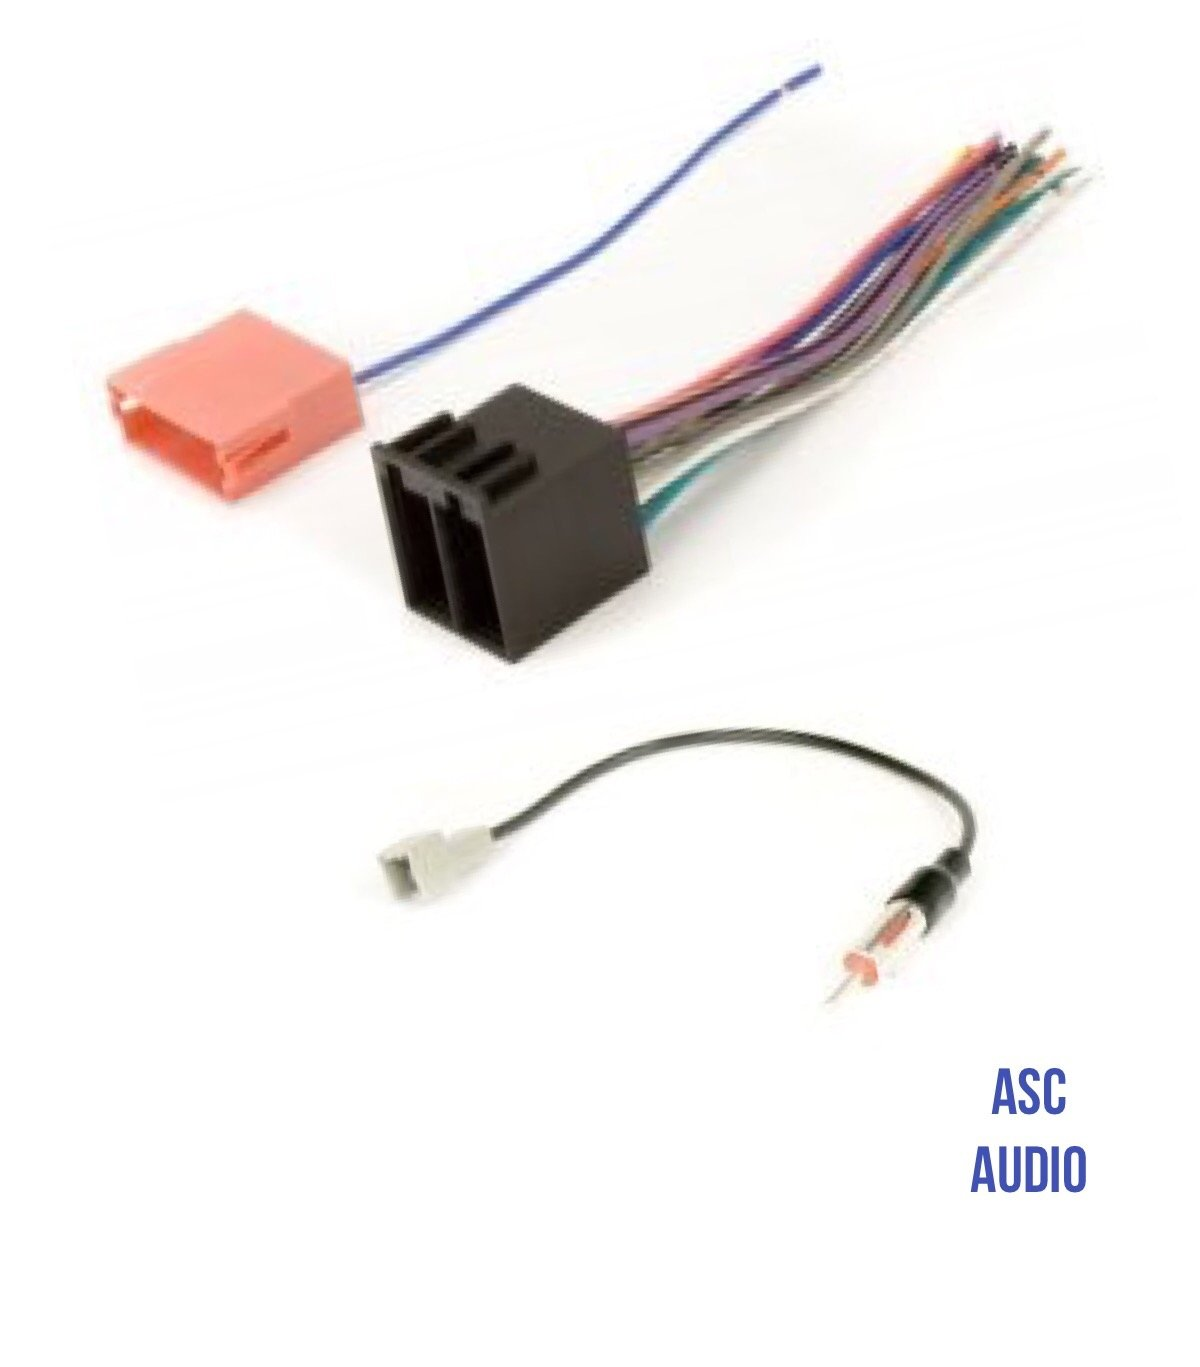 Amazon.com: ASC Audio Car Stereo Radio Wire Harness and Antenna Adapter to  Aftermarket Radio for some Kia and Hyundai Vehicles.- vehicles listed  below: Car ...